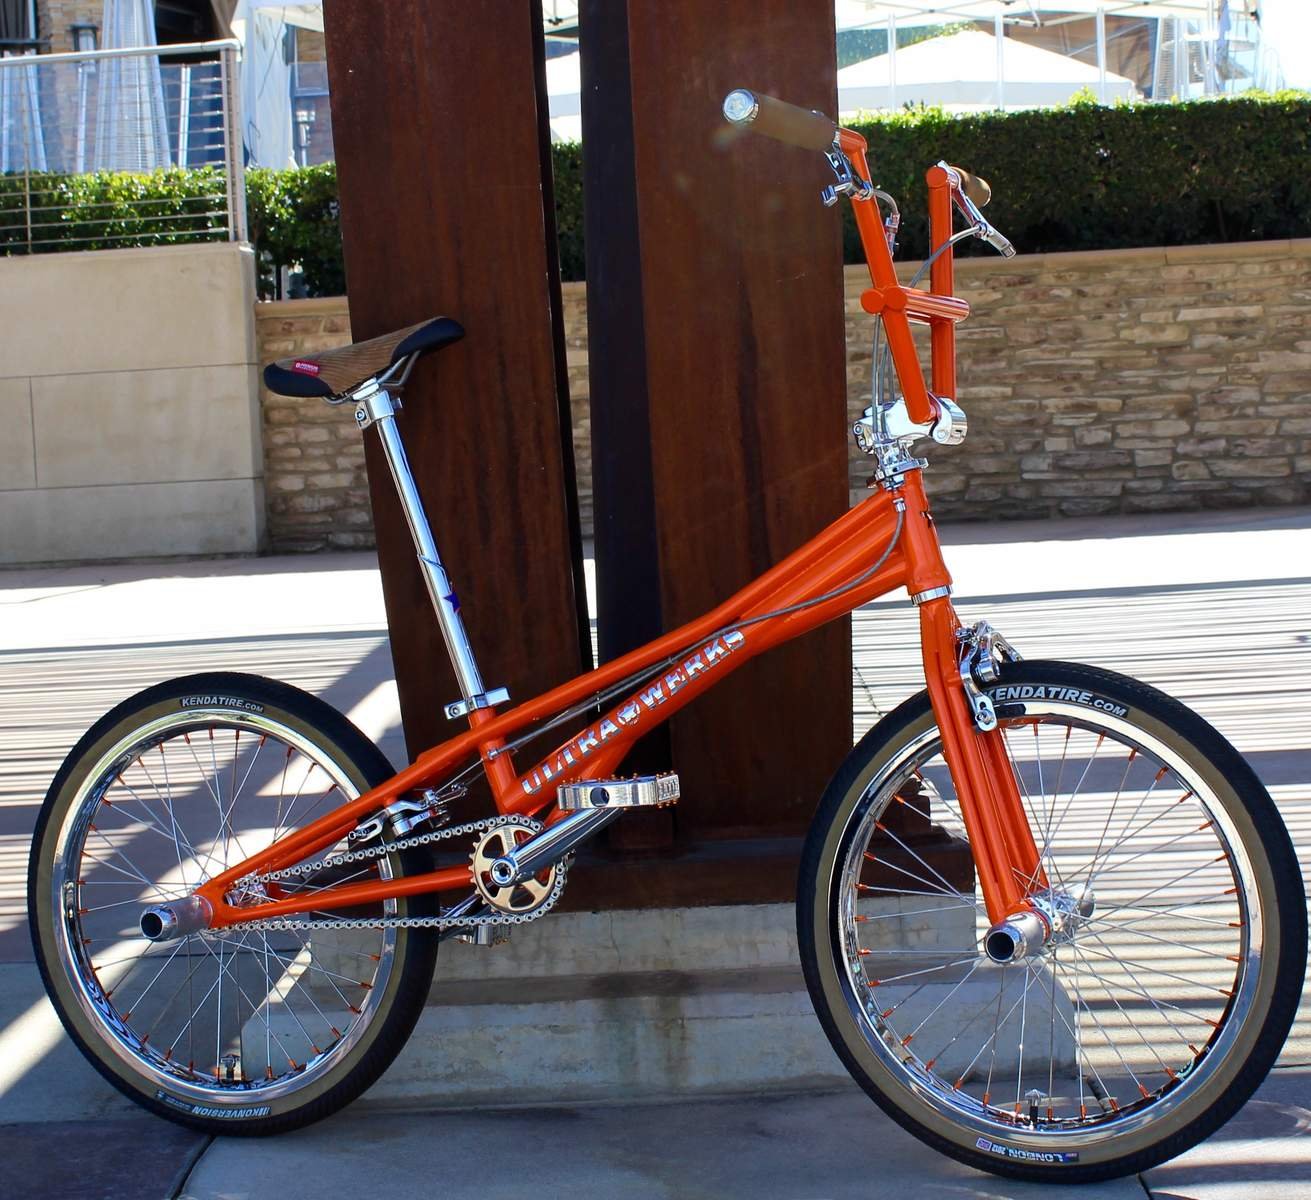 http://uploads.bmxmuseum.com/user-images/55127/2016-ultra-werks--mixology-custom-flatland-machine-0045bd1ee0f5a.jpg